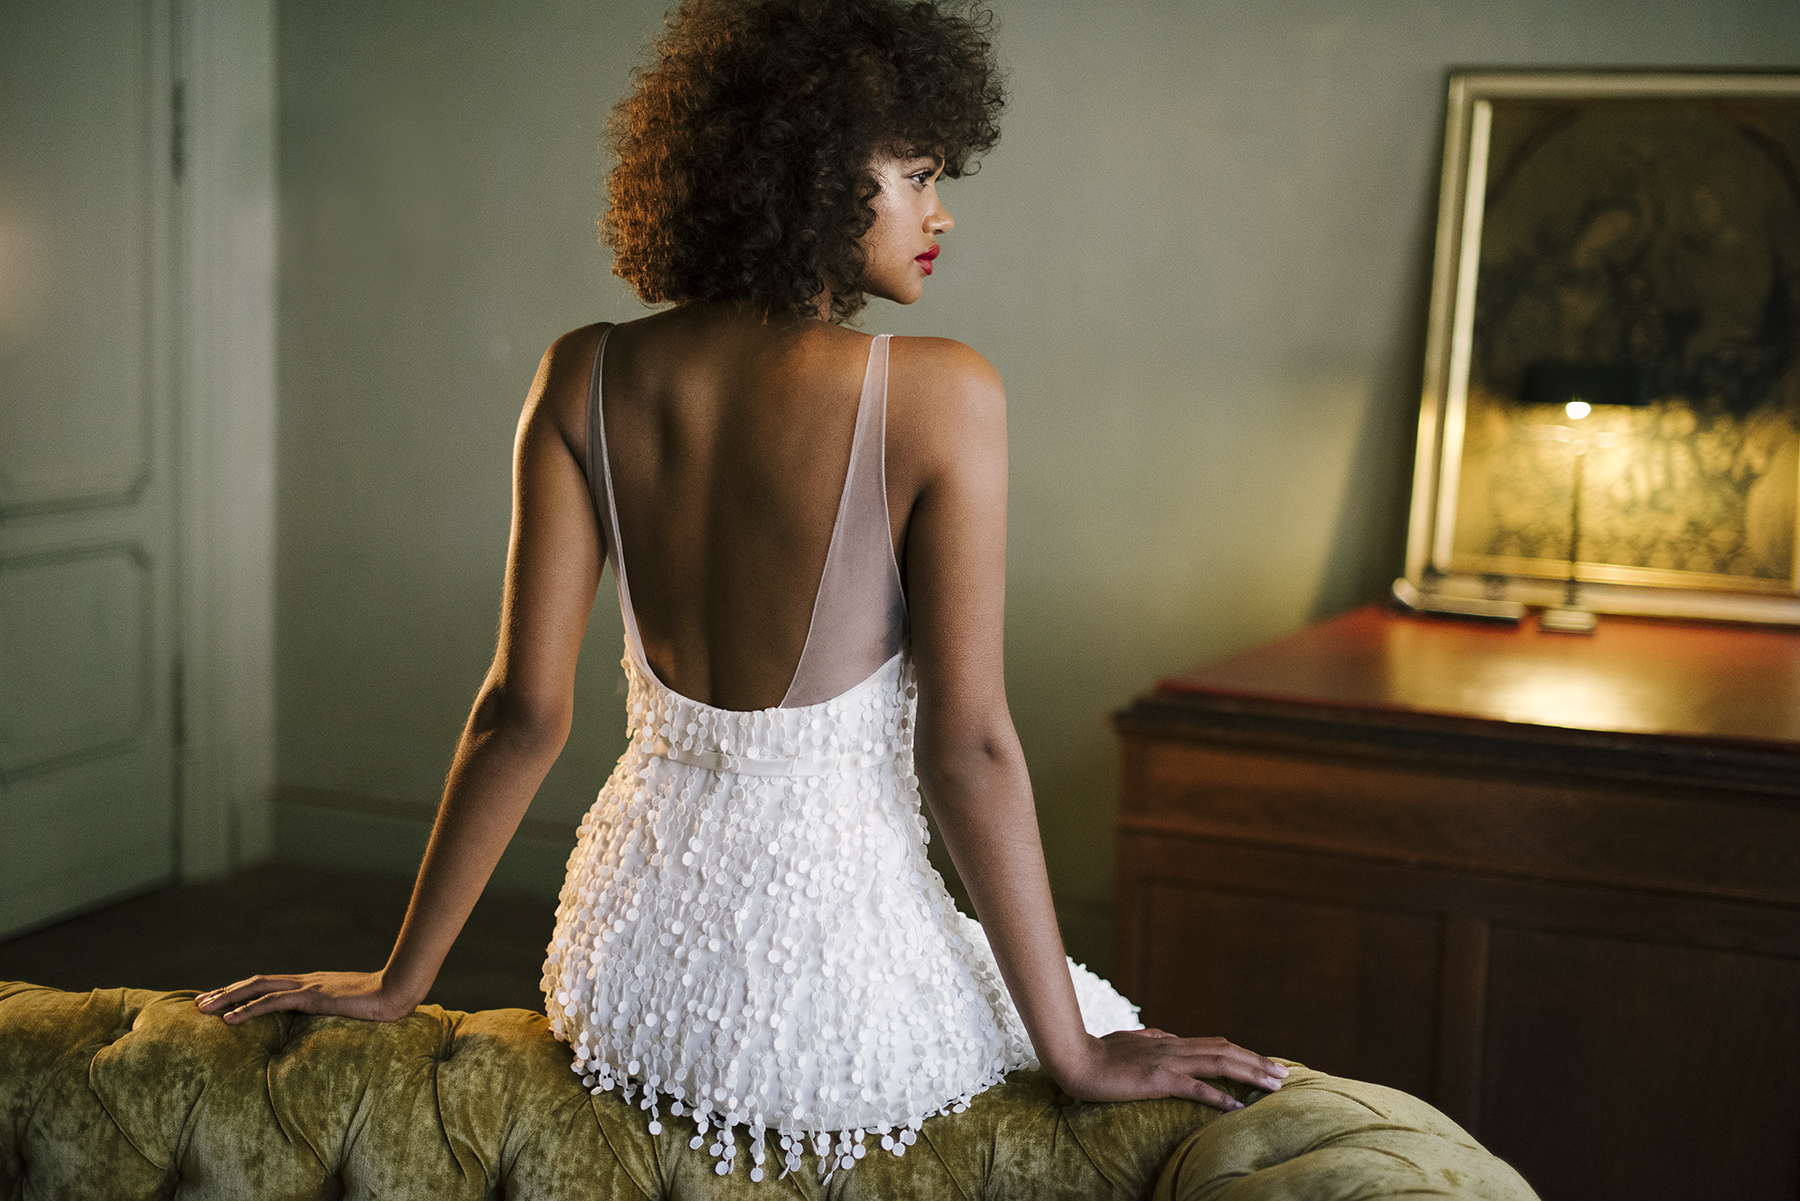 valentine-avoh-robe-mariee-rita-wedding-dress-backless-bruxelles-photo-elodie-timmermans-14.jpg